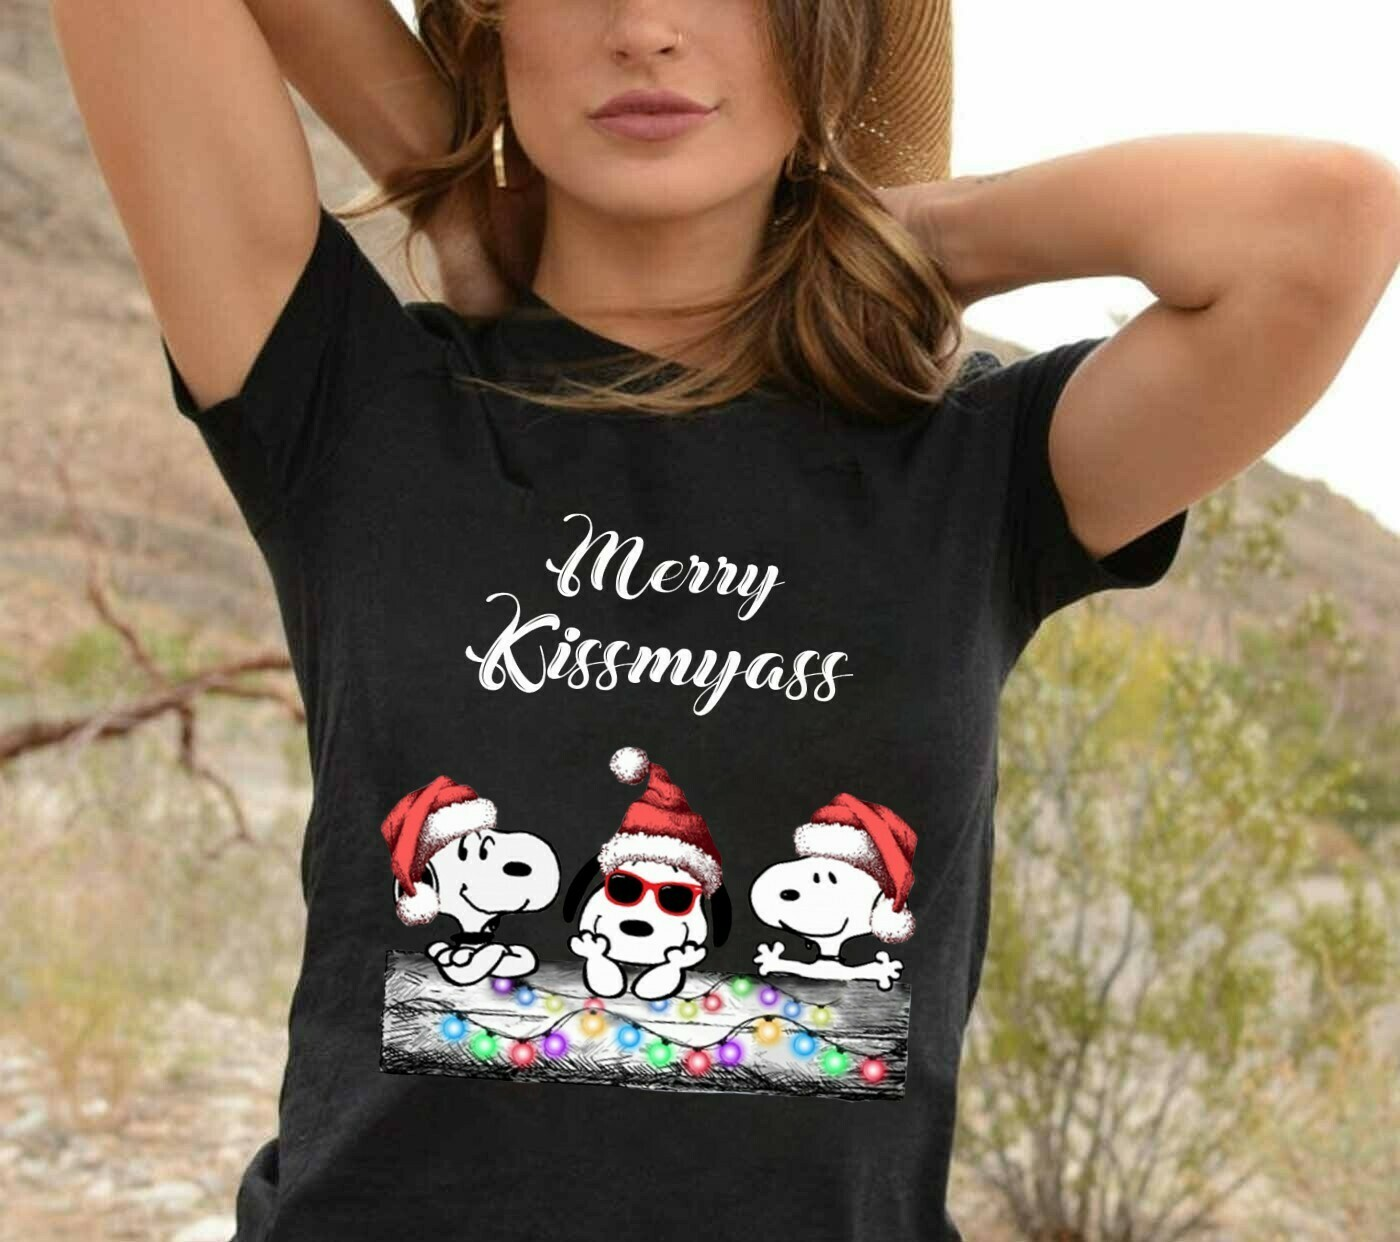 Snoopy Merry Kissmyass Snoopy Christmas,Snoopy Woodstock Charlie Brown Snowman Xmas Tree Merry Christmas 2019 Gift Noel Family Party T-Shirt Long Sleeve Sweatshirt Hoodie Jolly Family Gifts